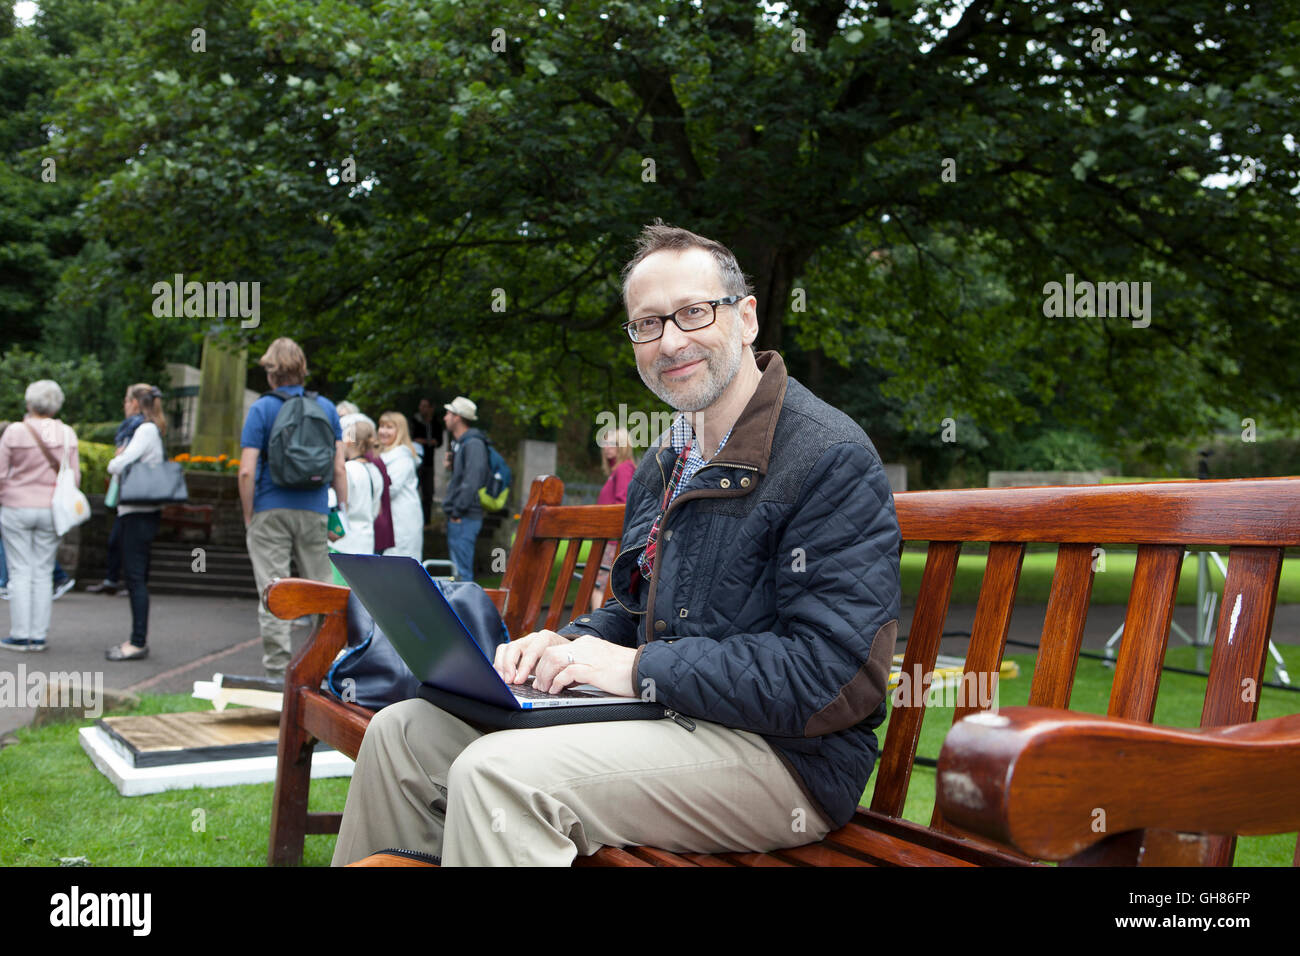 Edinburgh, Scotland, UK. 9th August, 2016. Photo call from Teacup Travels, shooting new television series of CBeebies - Stock Image